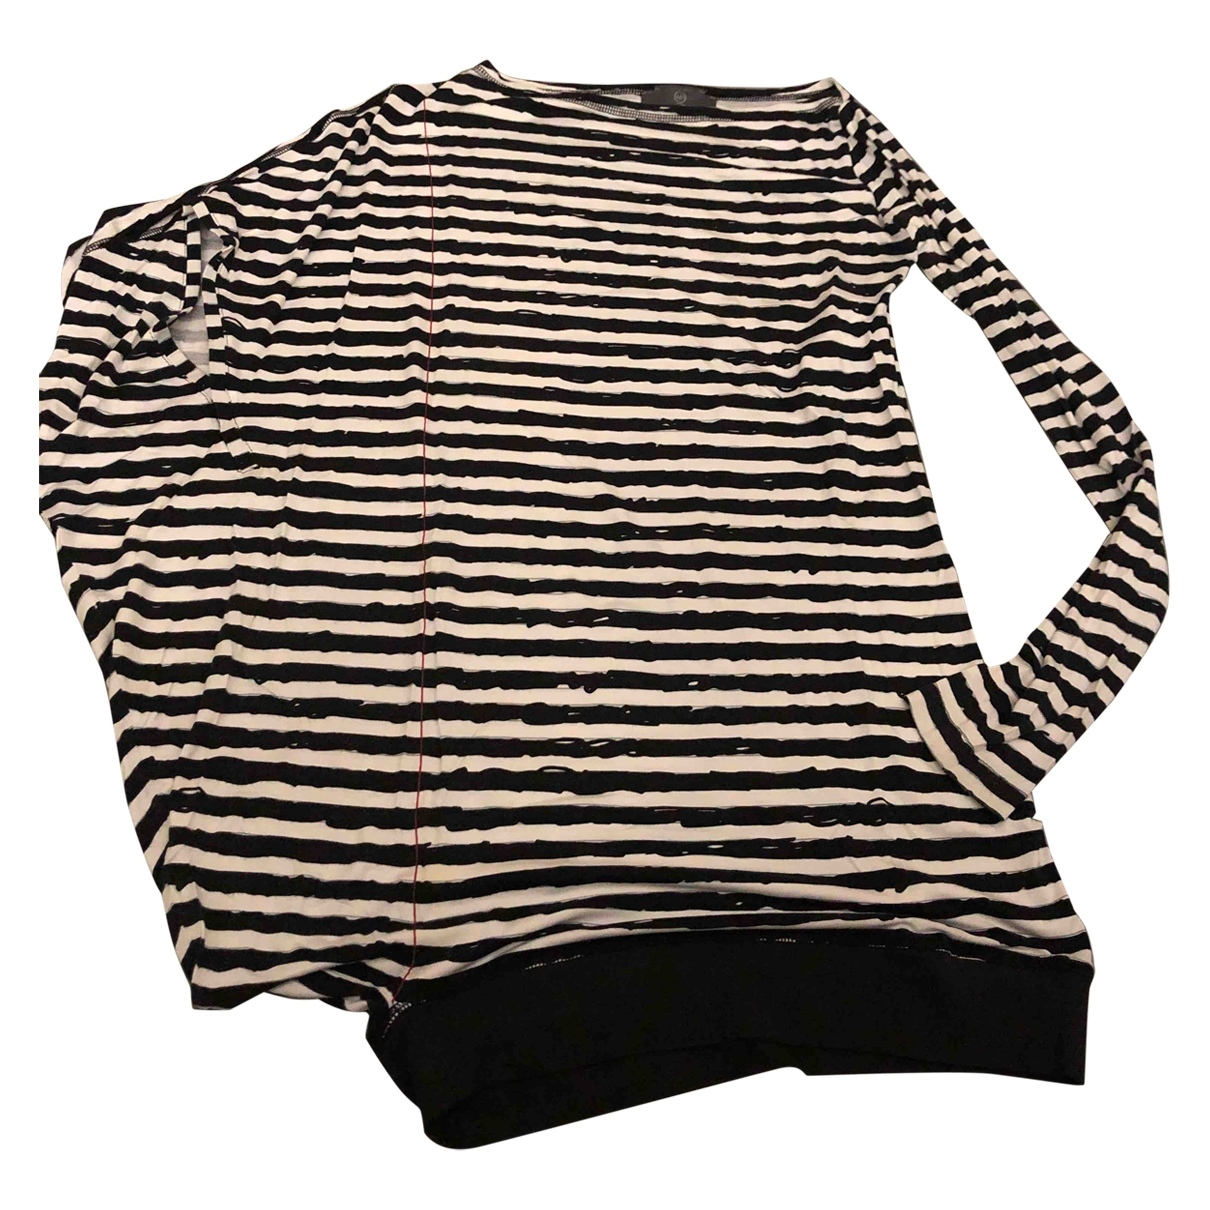 Mcq \N Black Cotton  top for Women S International